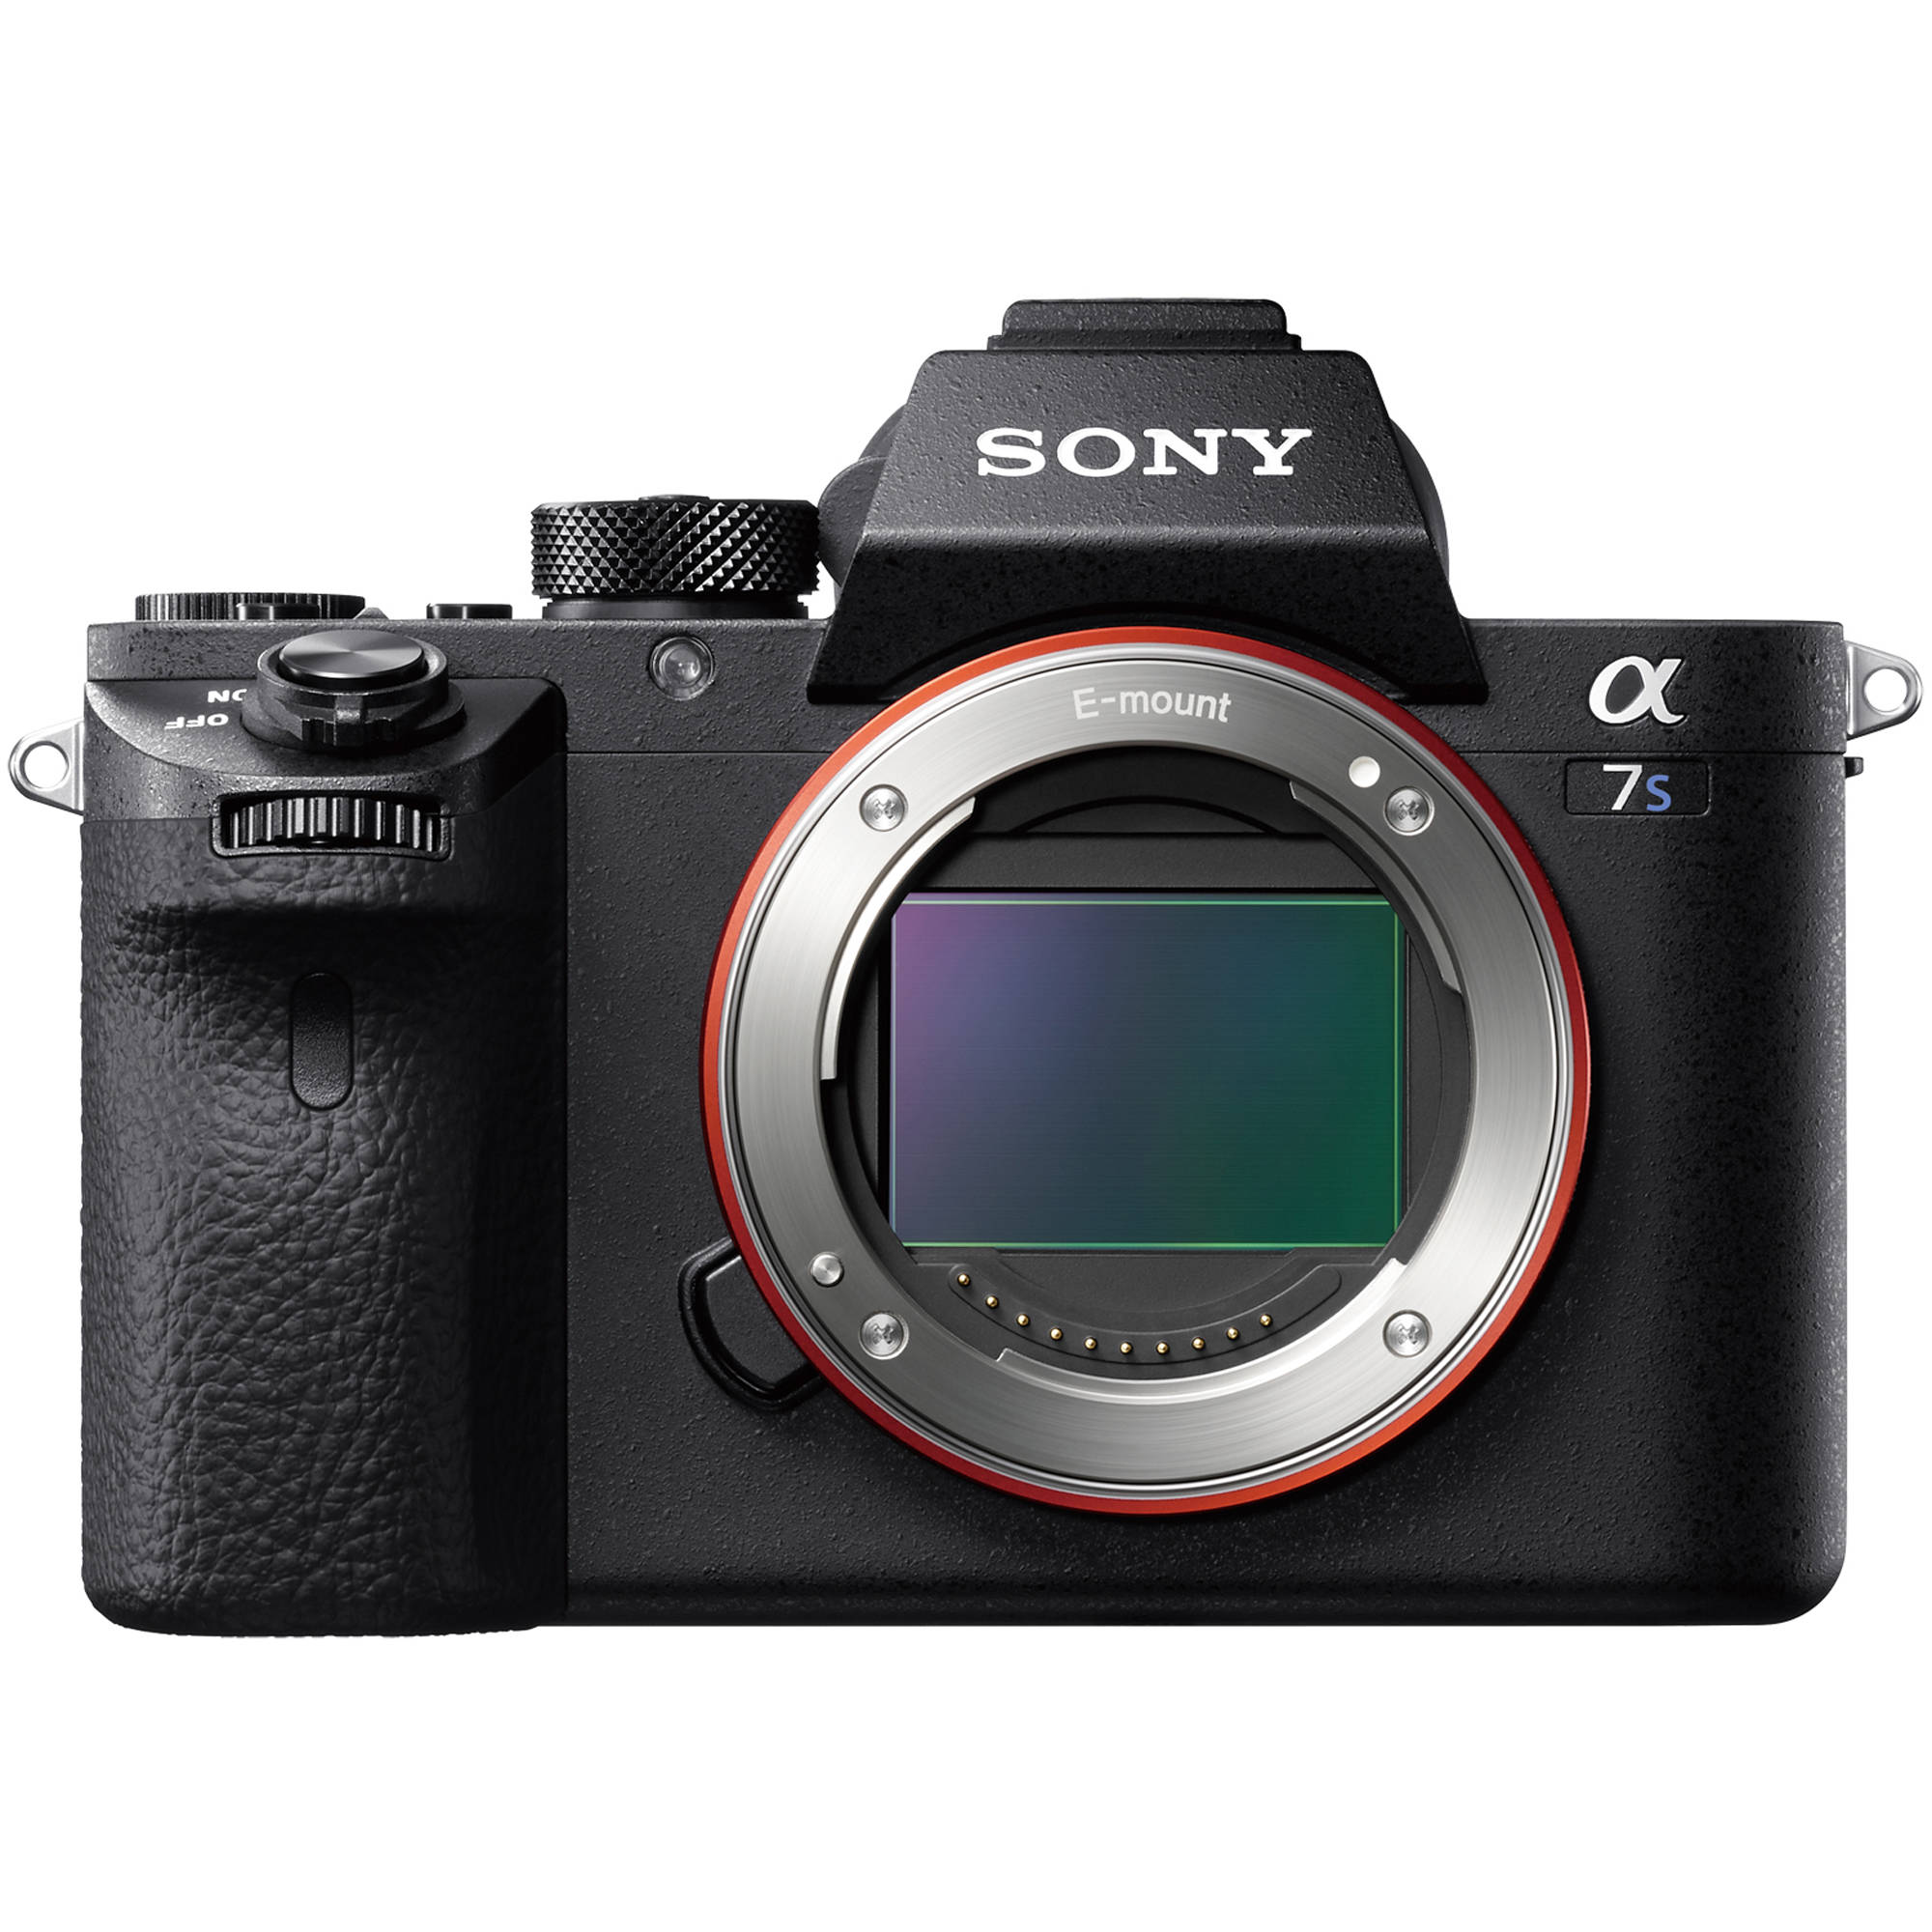 Sony alpha a7s ii mirrorless digital camera ilce7sm2b bh photo sony alpha a7s ii mirrorless digital camera body only fandeluxe Image collections